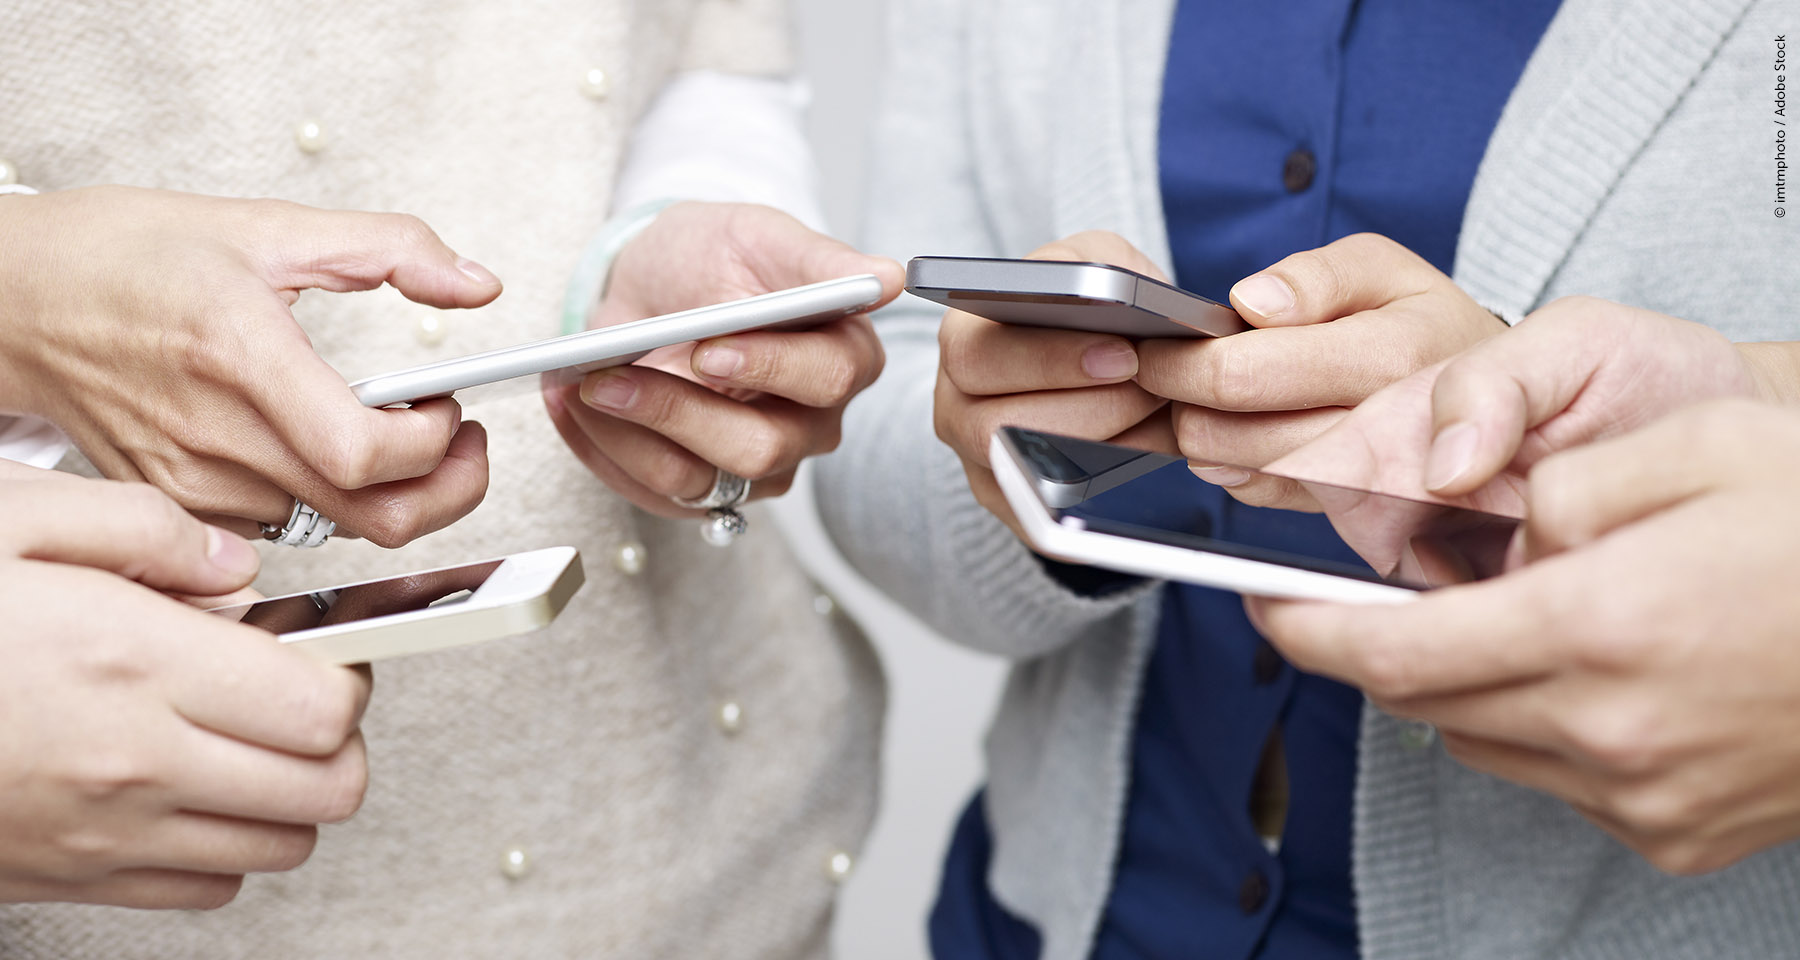 Mobile news audience grows despite circulation declines